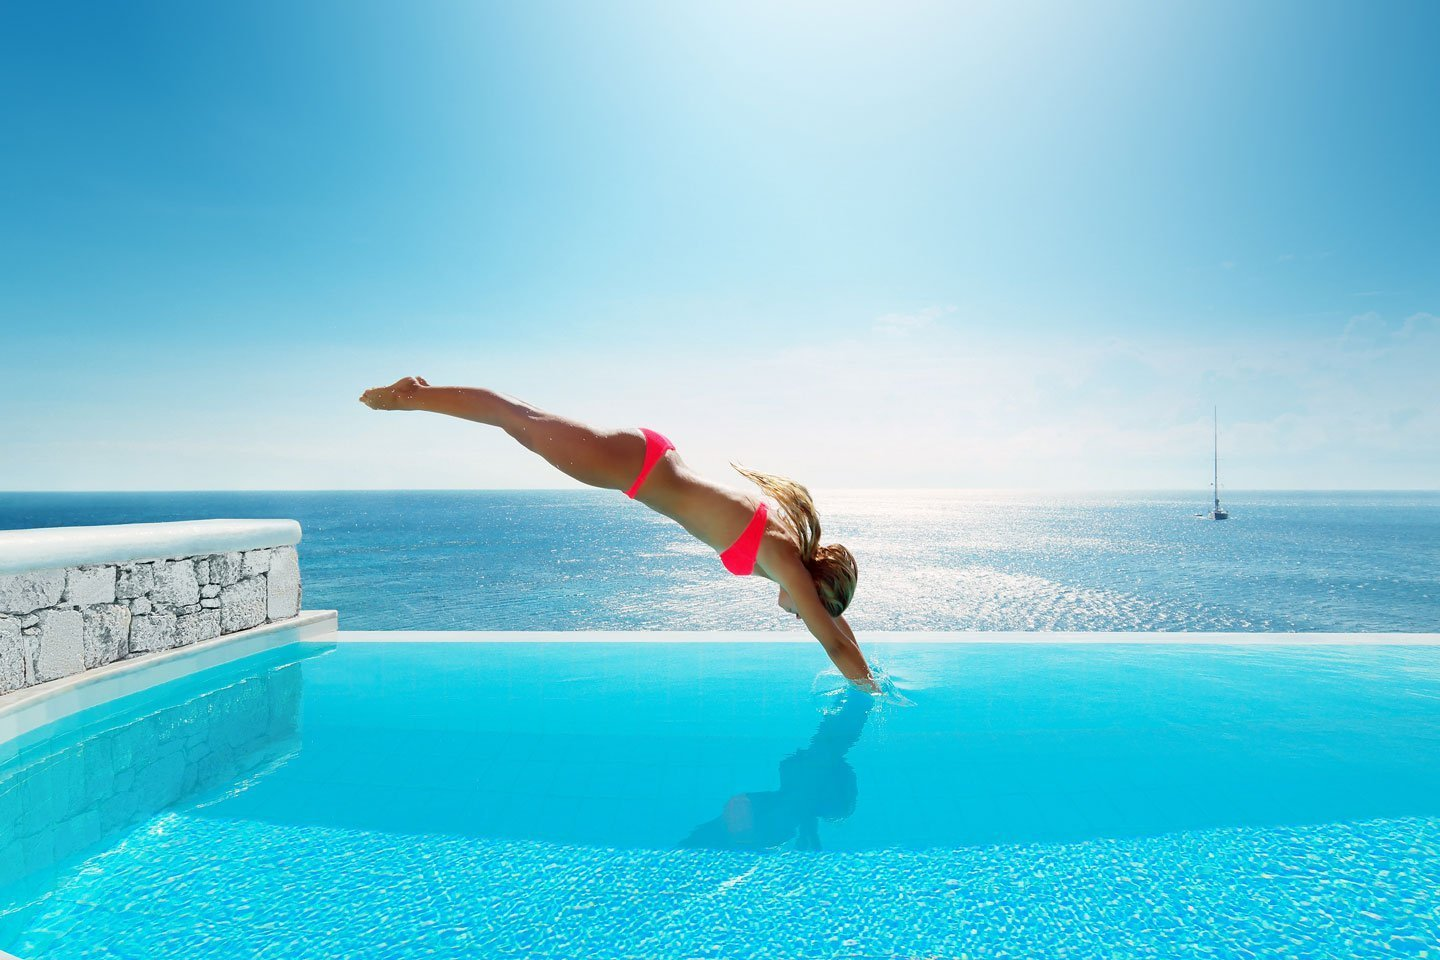 Lady in a red swimsuit diving into an infinity crystal clear pool overlooking the sea.